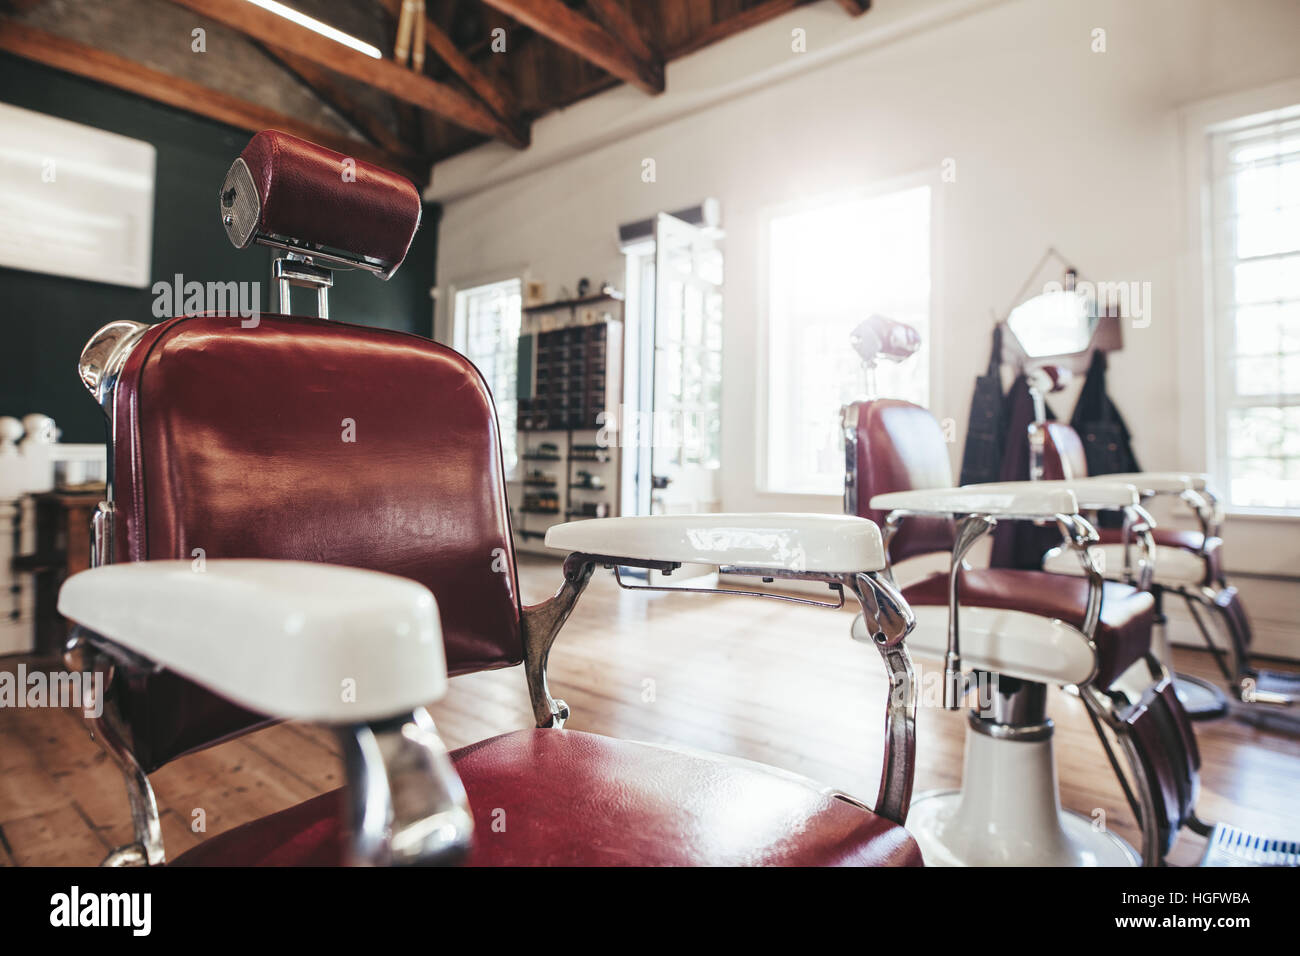 Hair Salon Interior With Empty Chairs Retro Styled Barbershop Stock